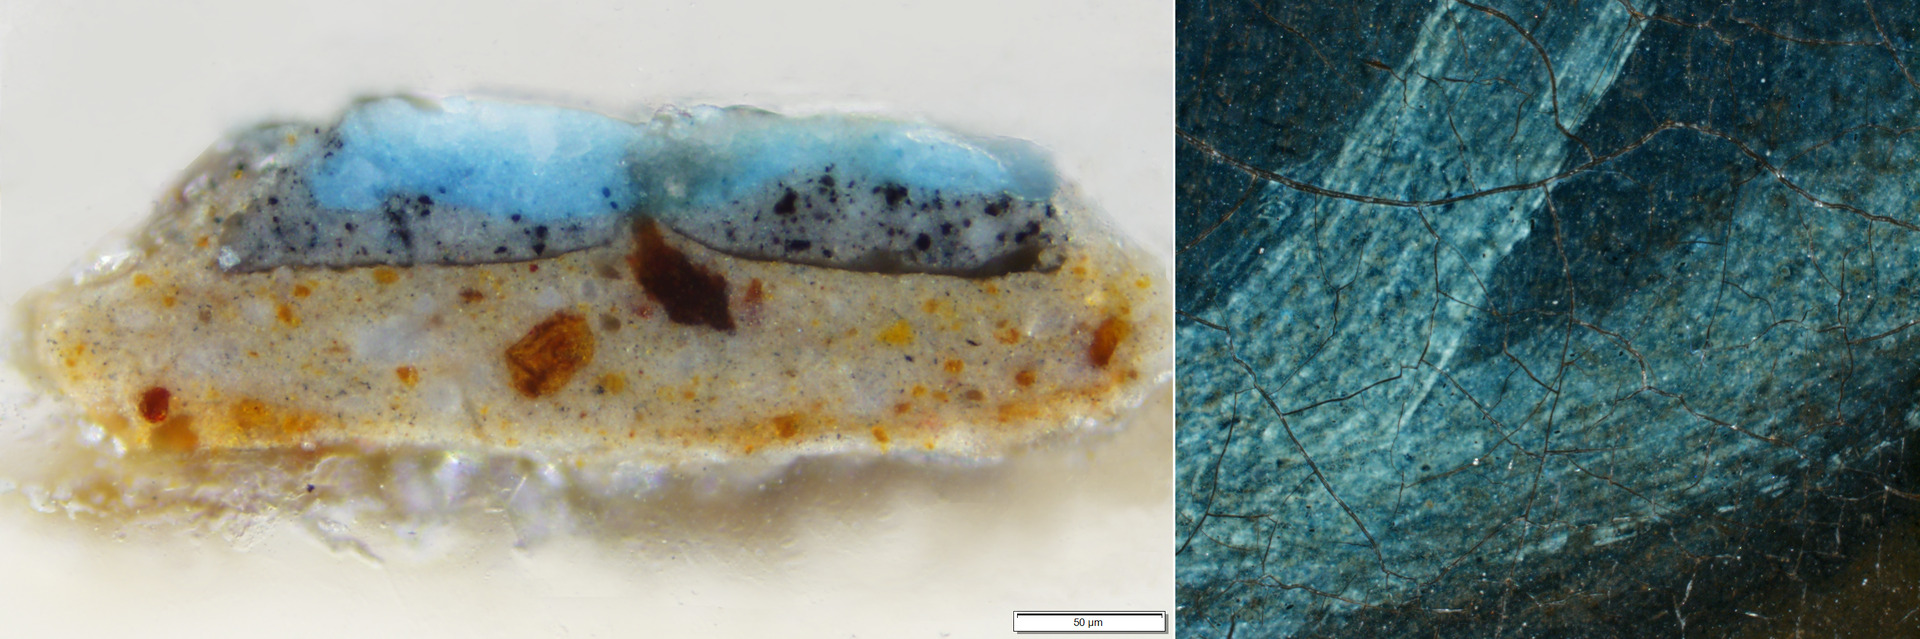 Left: Cross section taken from B1970.1 where analysis has identified the pigment Prussian Blue. Right: Microphotograph showing the area of the blue coat in the painting from which the sample was taken. Photos by Jessica David